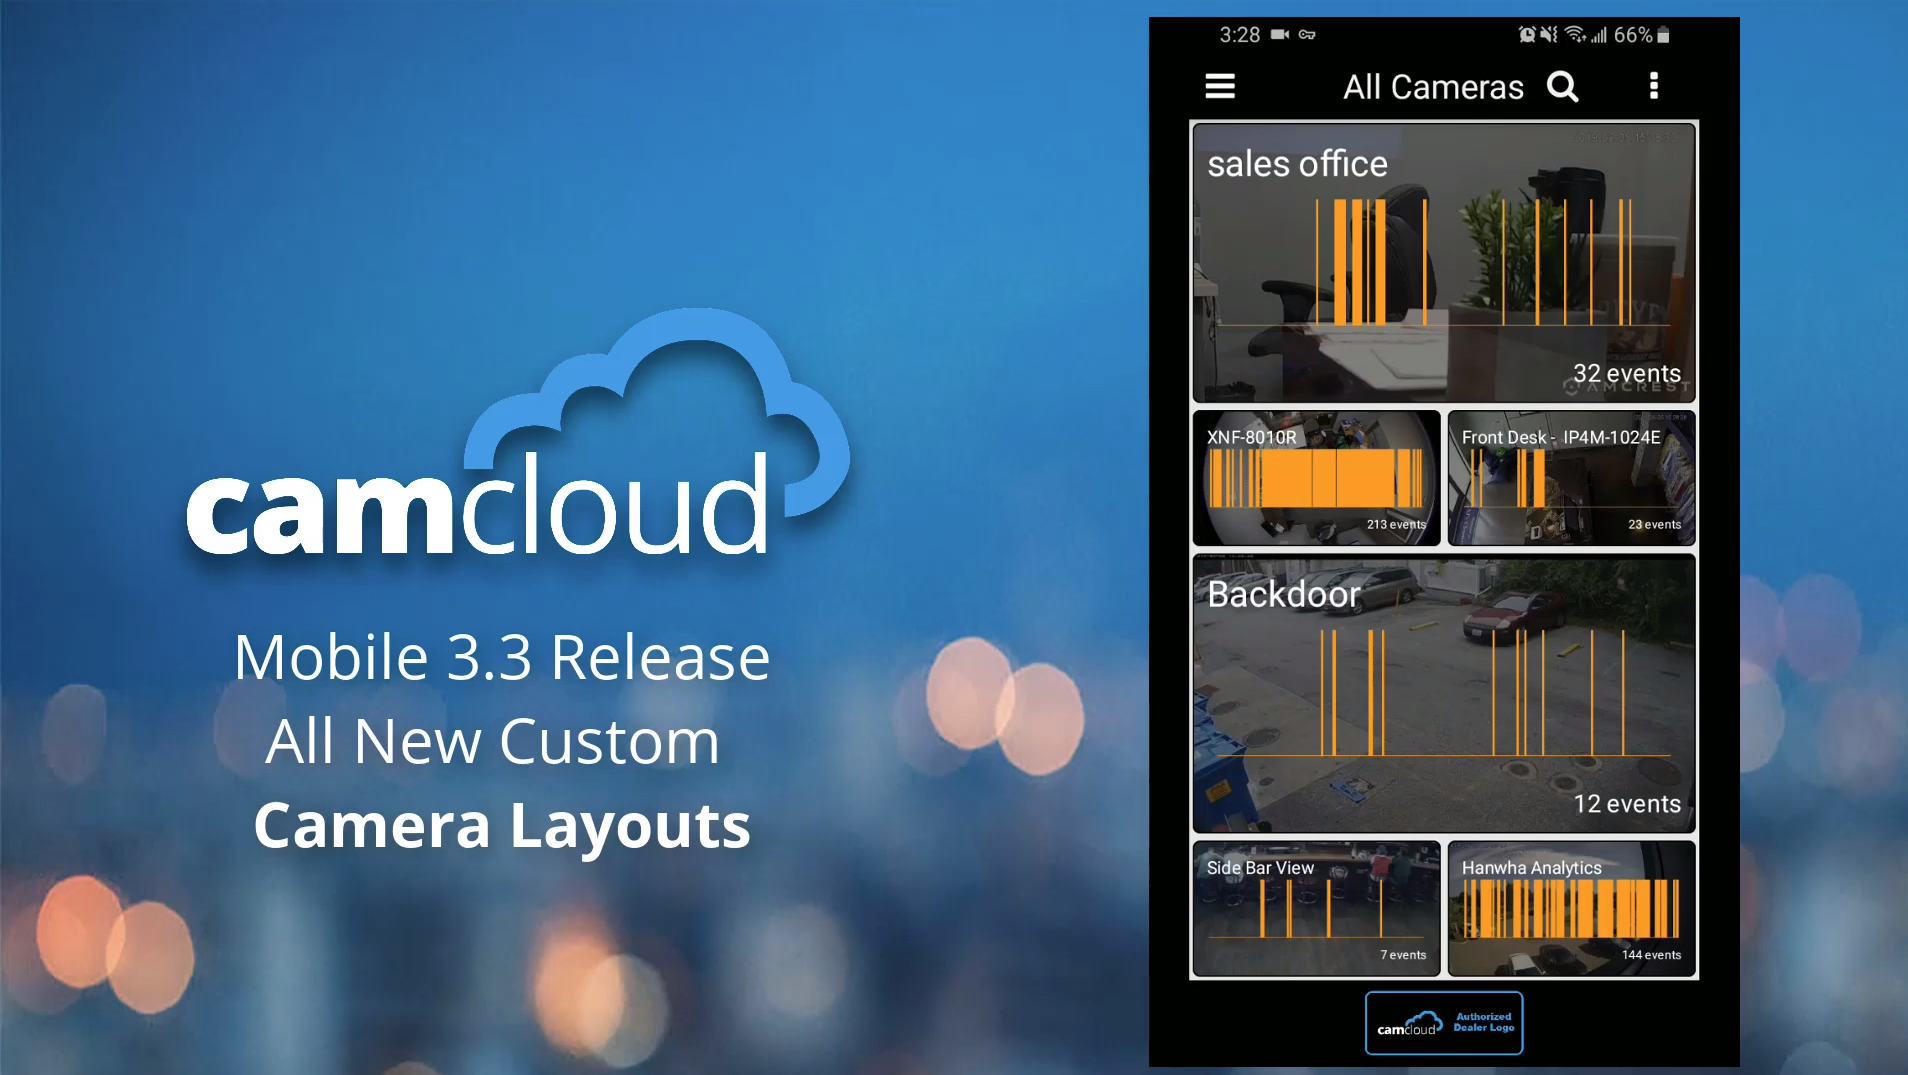 Camcloud Mobile 3.3